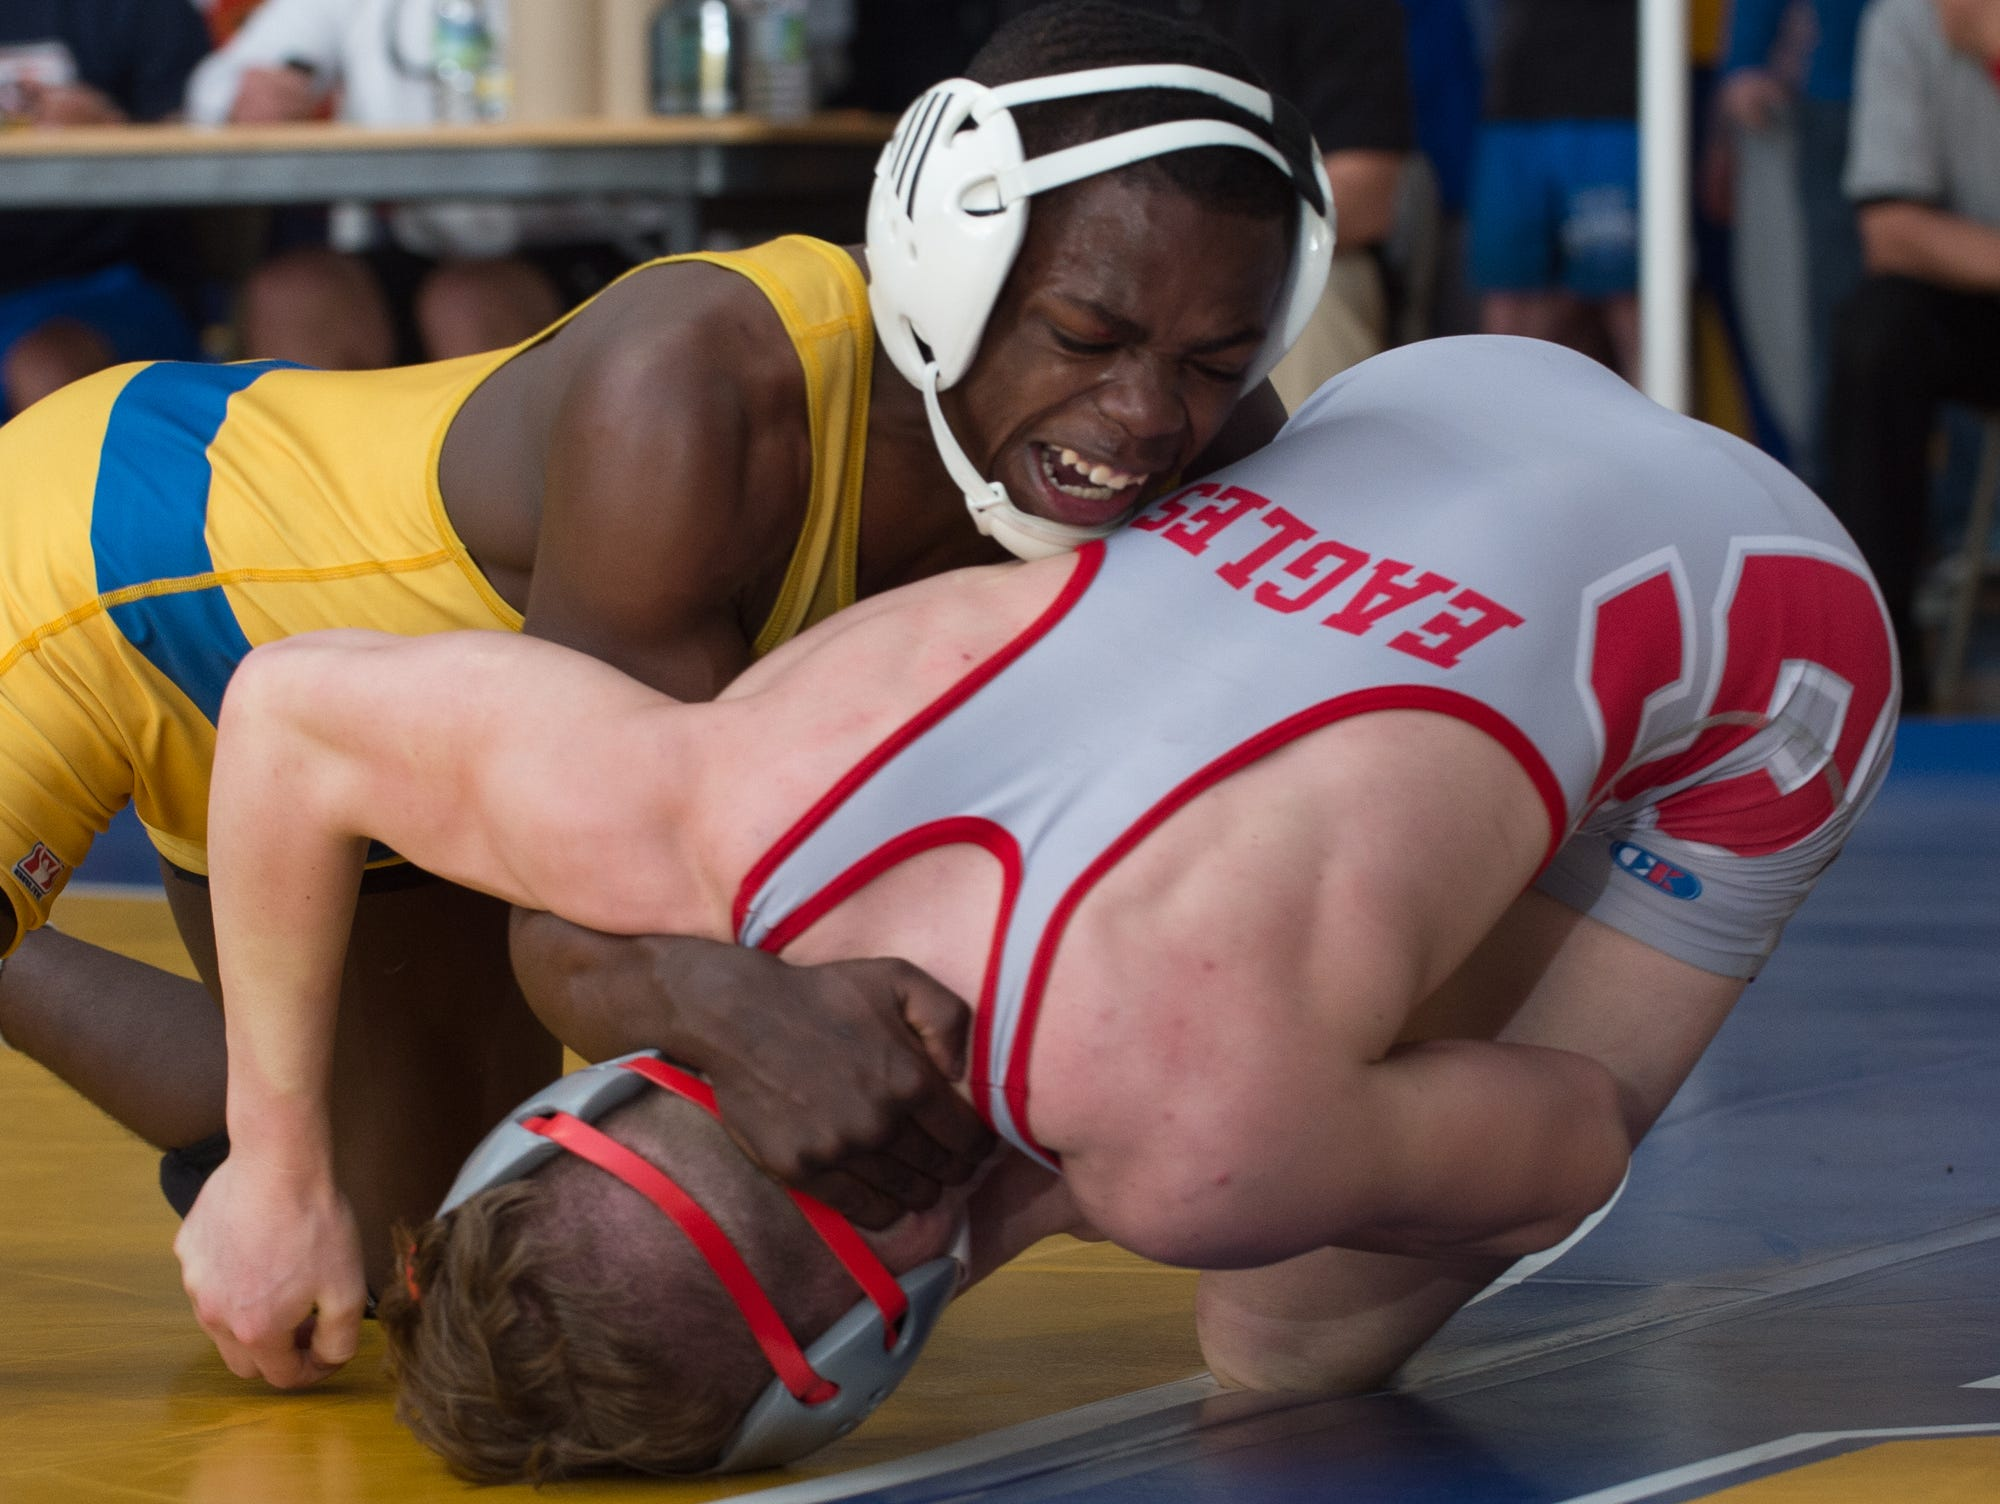 Sussex Central's Rashad Stratton works to roll Smyrna's Cole Sebastianelli on to his back in the 126 pound championship match at the Henlopen Conference wrestling tournament at Sussex Central High School.